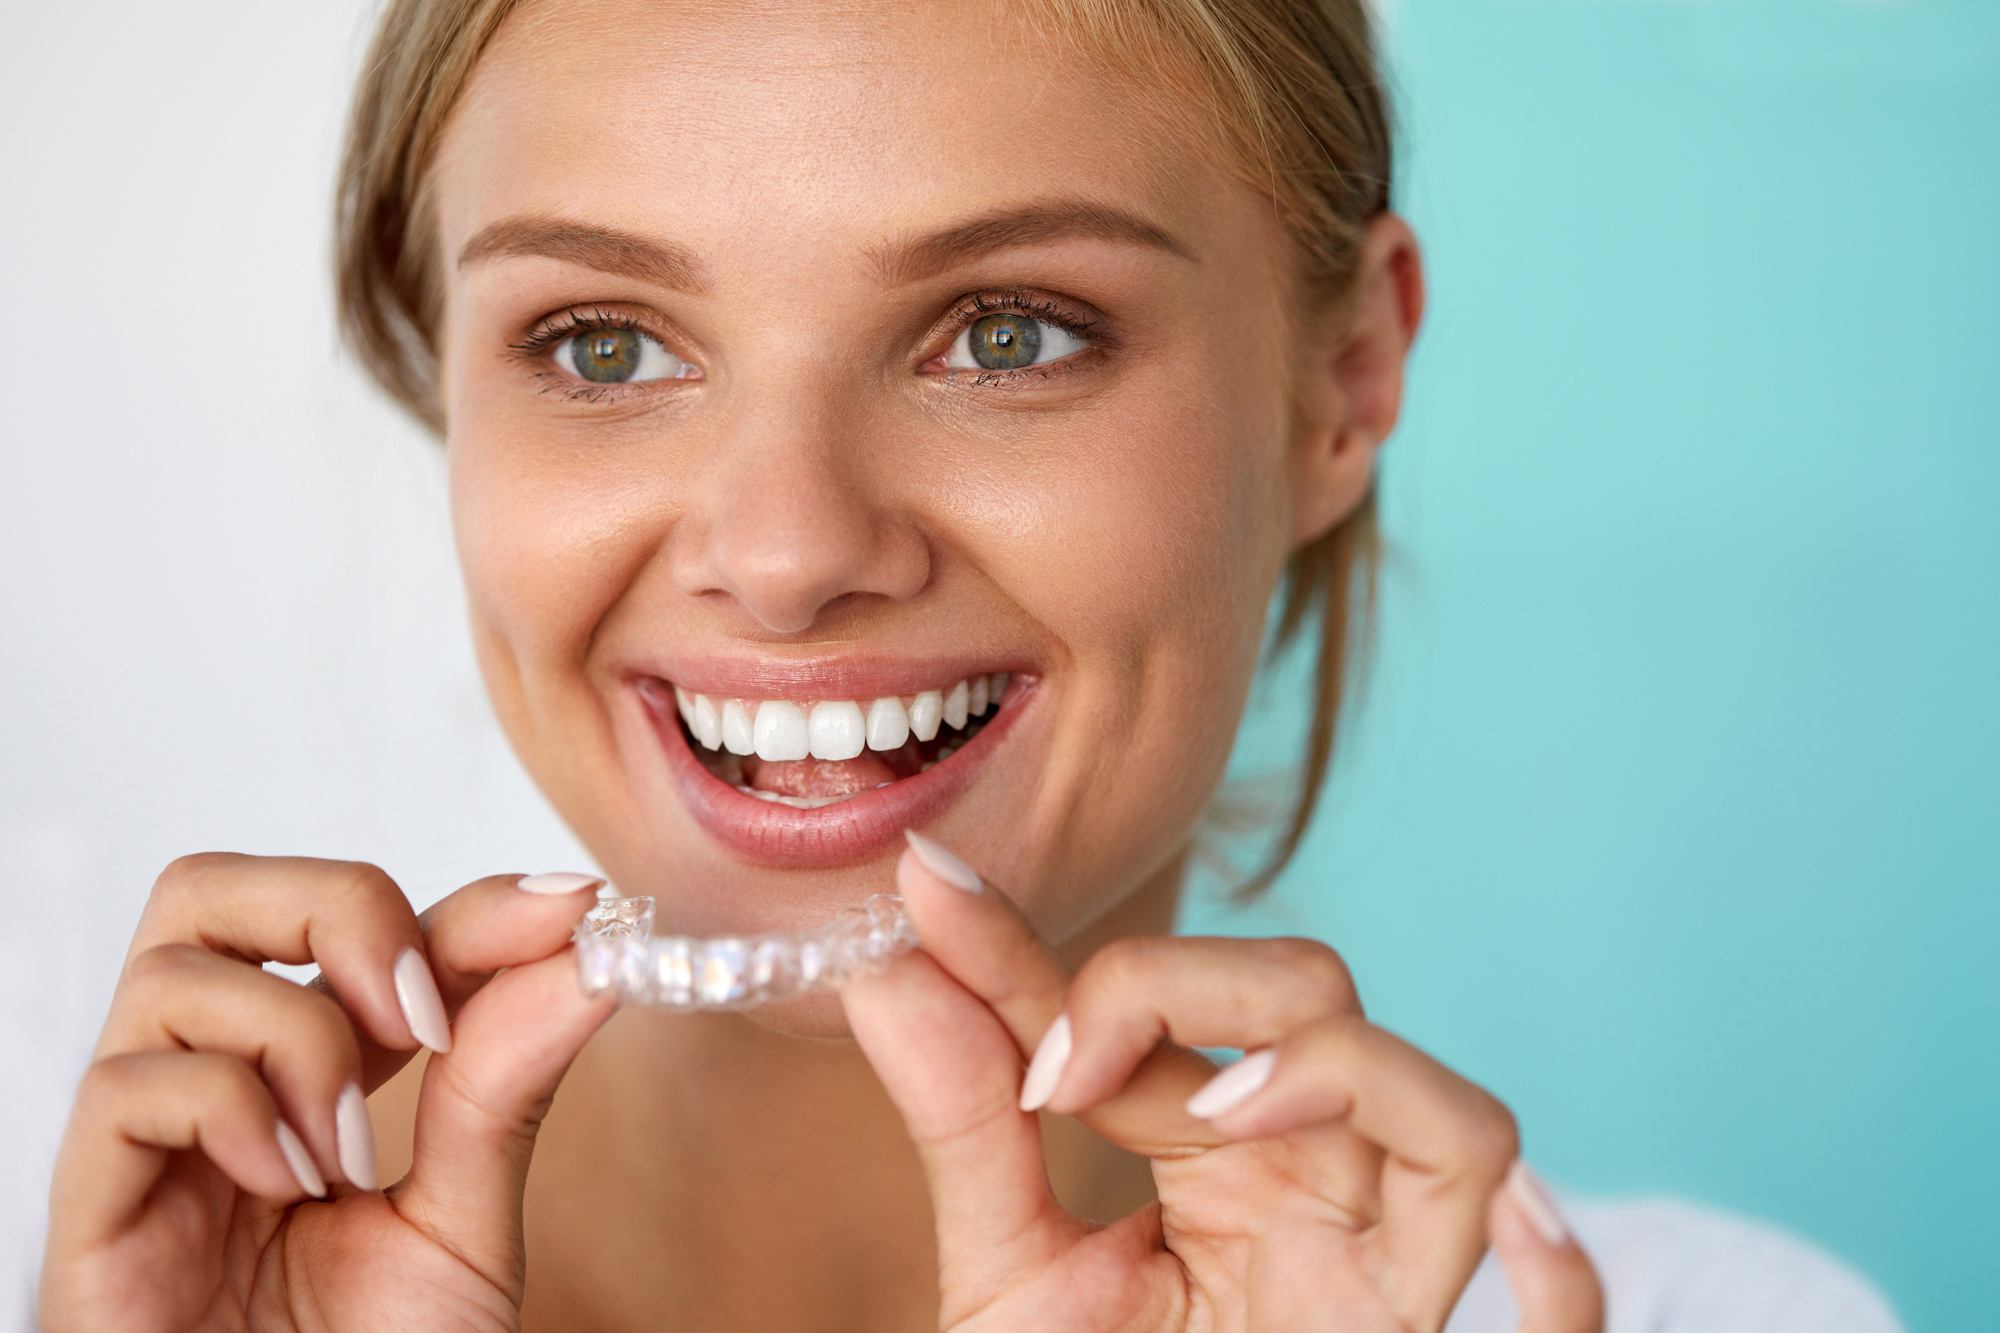 There are many reasons why you should get Invisalign, but how long does Invisalign take to work? Our guide here explains the process.